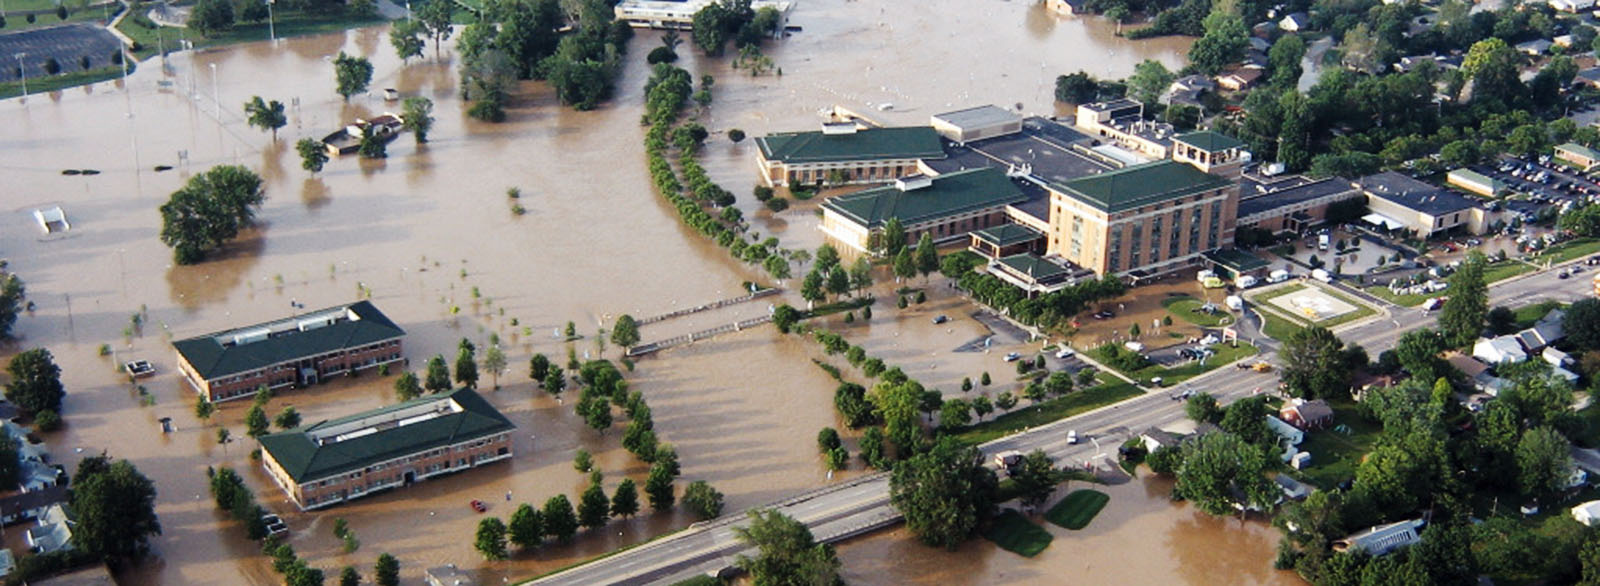 Aerial photo showing 2008 flood damage to hospital